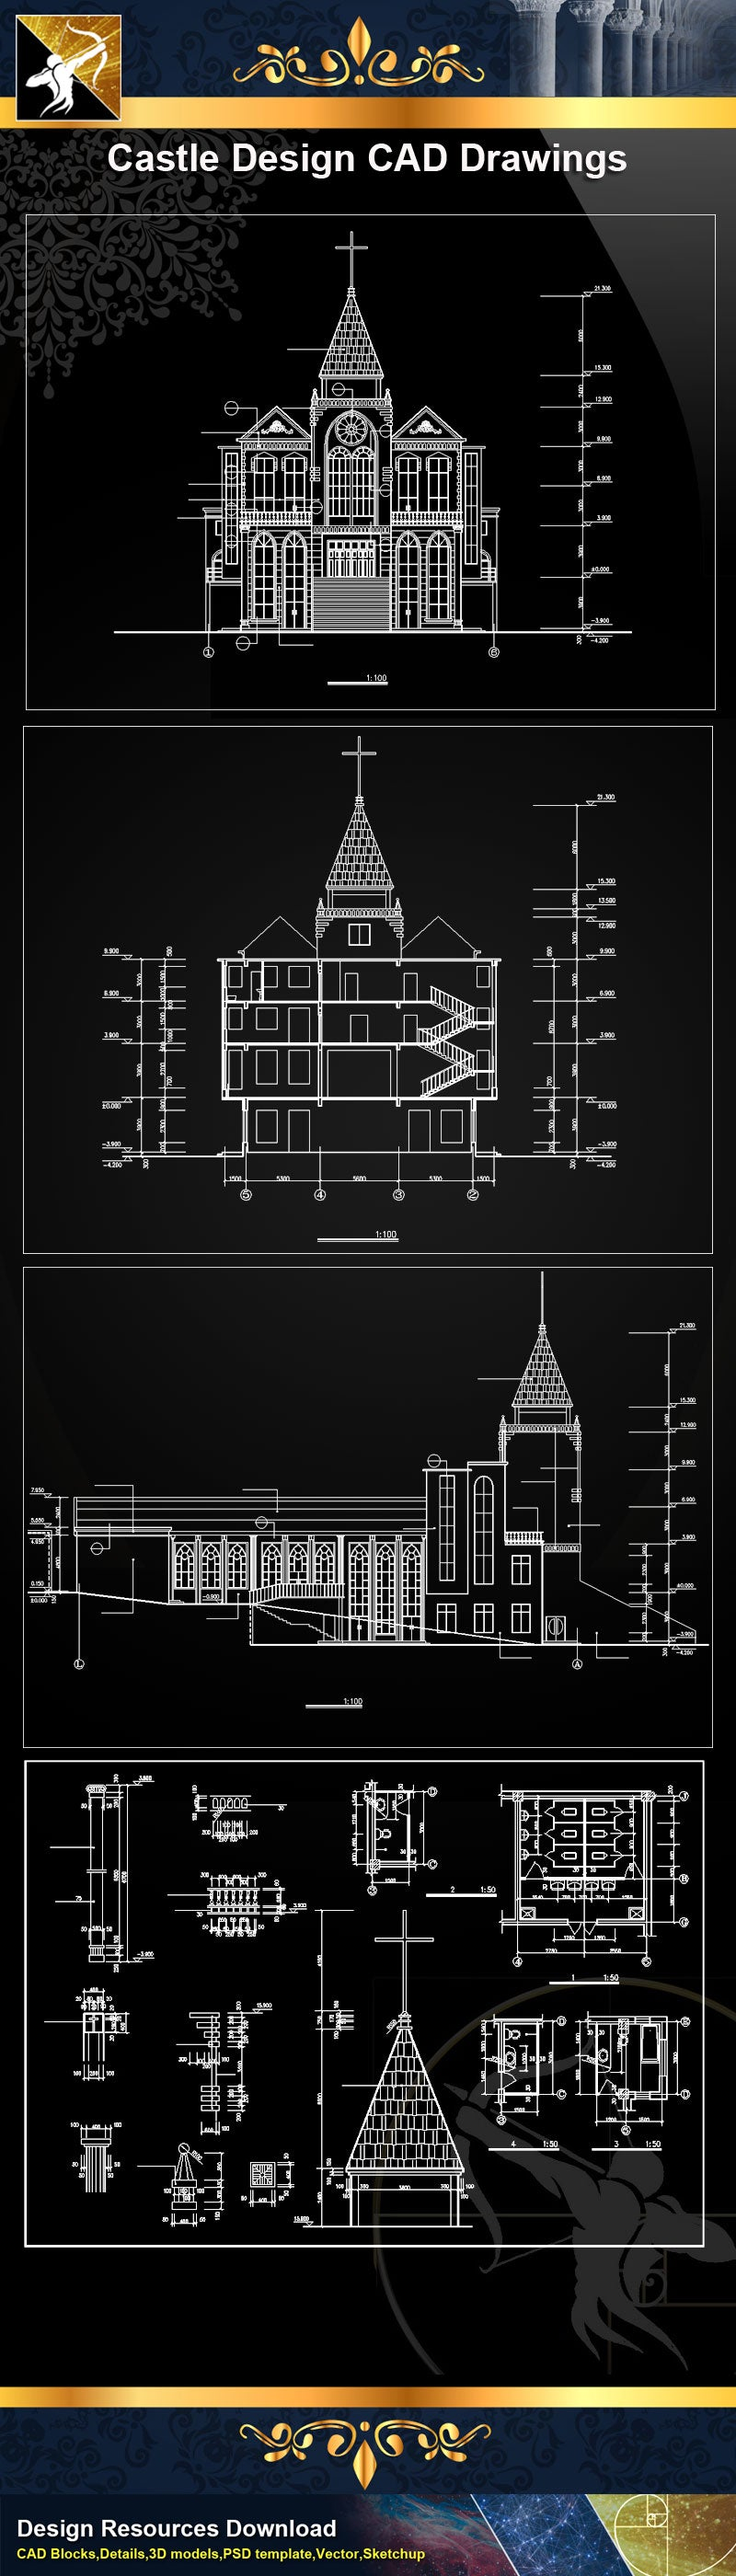 Church Plan,elevation,Details CAD Drawings